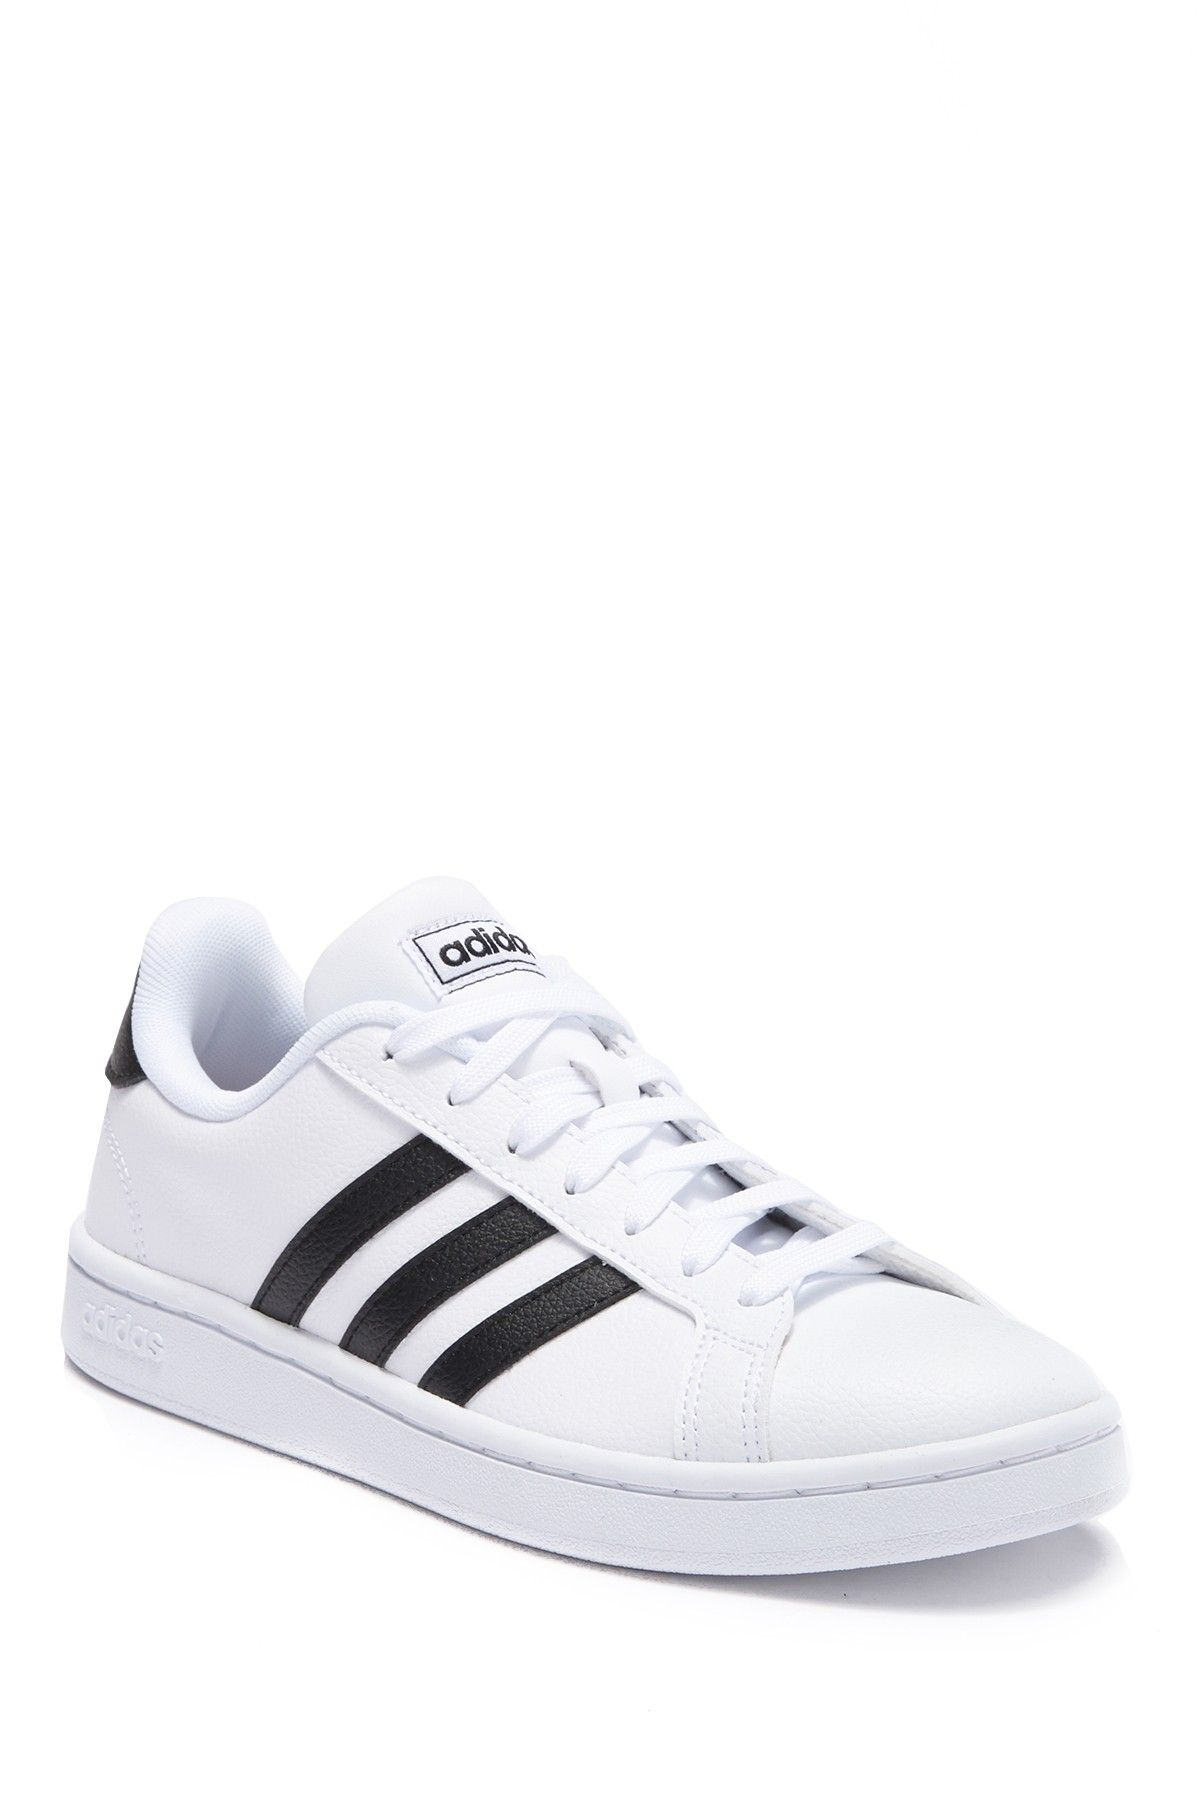 Pin on Adidas classic shoes